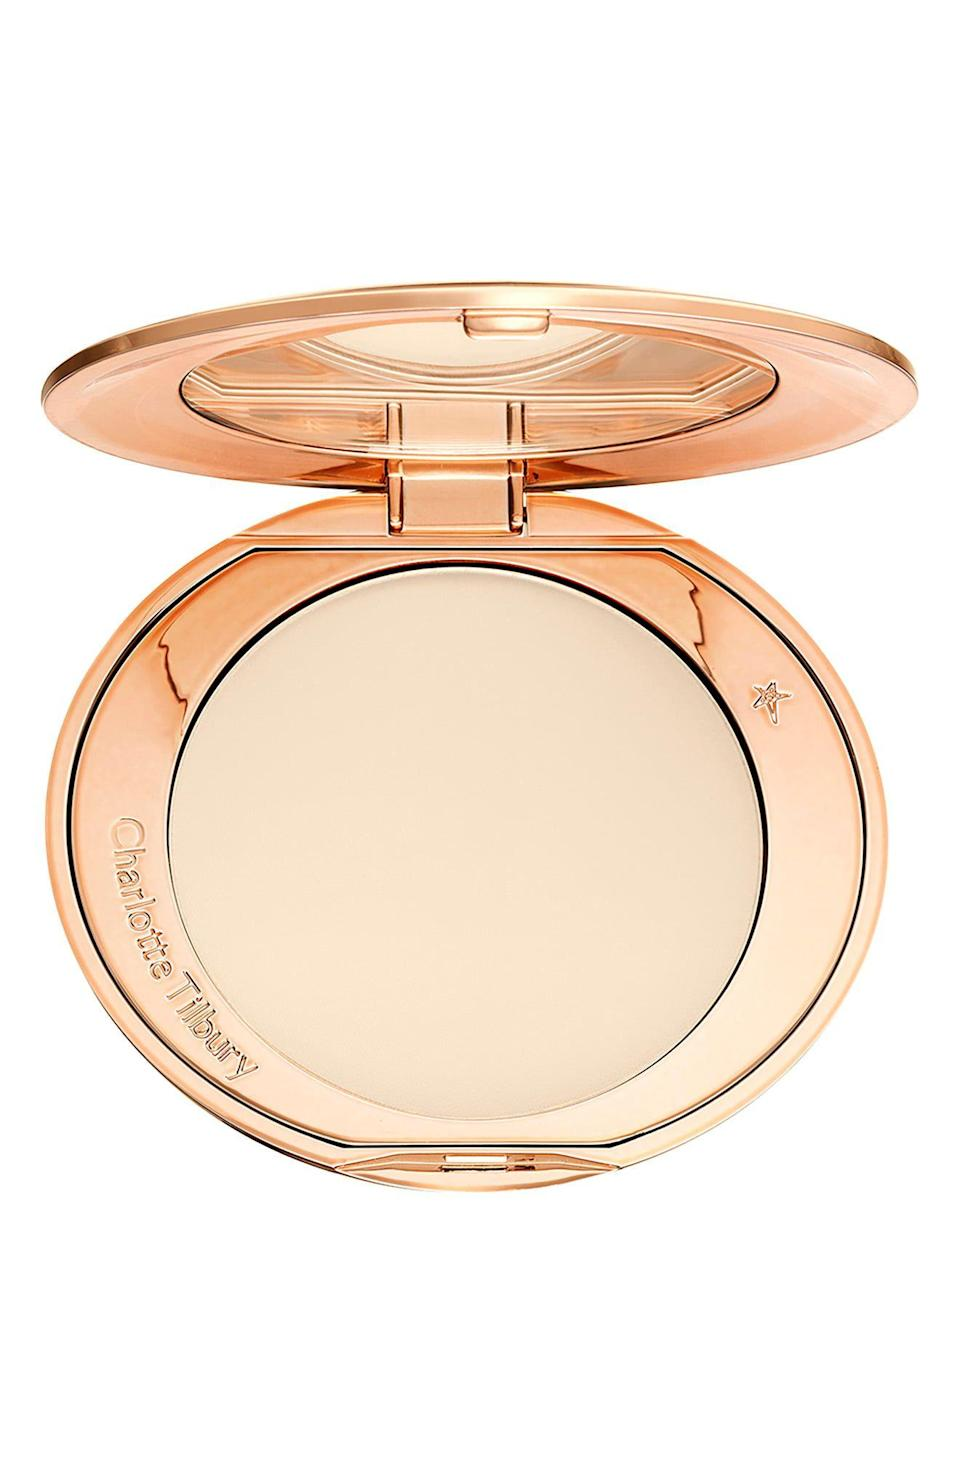 "<p><strong>CHARLOTTE TILBURY</strong></p><p>nordstrom.com</p><p><strong>$45.00</strong></p><p><a href=""https://go.redirectingat.com?id=74968X1596630&url=https%3A%2F%2Fwww.nordstrom.com%2Fs%2Fcharlotte-tilbury-airbrush-flawless-finish-setting-powder%2F3849022&sref=https%3A%2F%2Fwww.goodhousekeeping.com%2Fbeauty-products%2Fg35745893%2Fbest-face-powders%2F"" rel=""nofollow noopener"" target=""_blank"" data-ylk=""slk:Shop Now"" class=""link rapid-noclick-resp"">Shop Now</a></p><p>For skin that looks airbrushed and radiant, look no further than this setting powder. ""Of all the powders I have tried (and it has been nearly dozens now), this is the one,"" raves one reviewer. ""<strong>This powder will make your wrinkles and pores vanish, and will make your skin look smoother and softer than it ever has before.</strong>"" </p>"